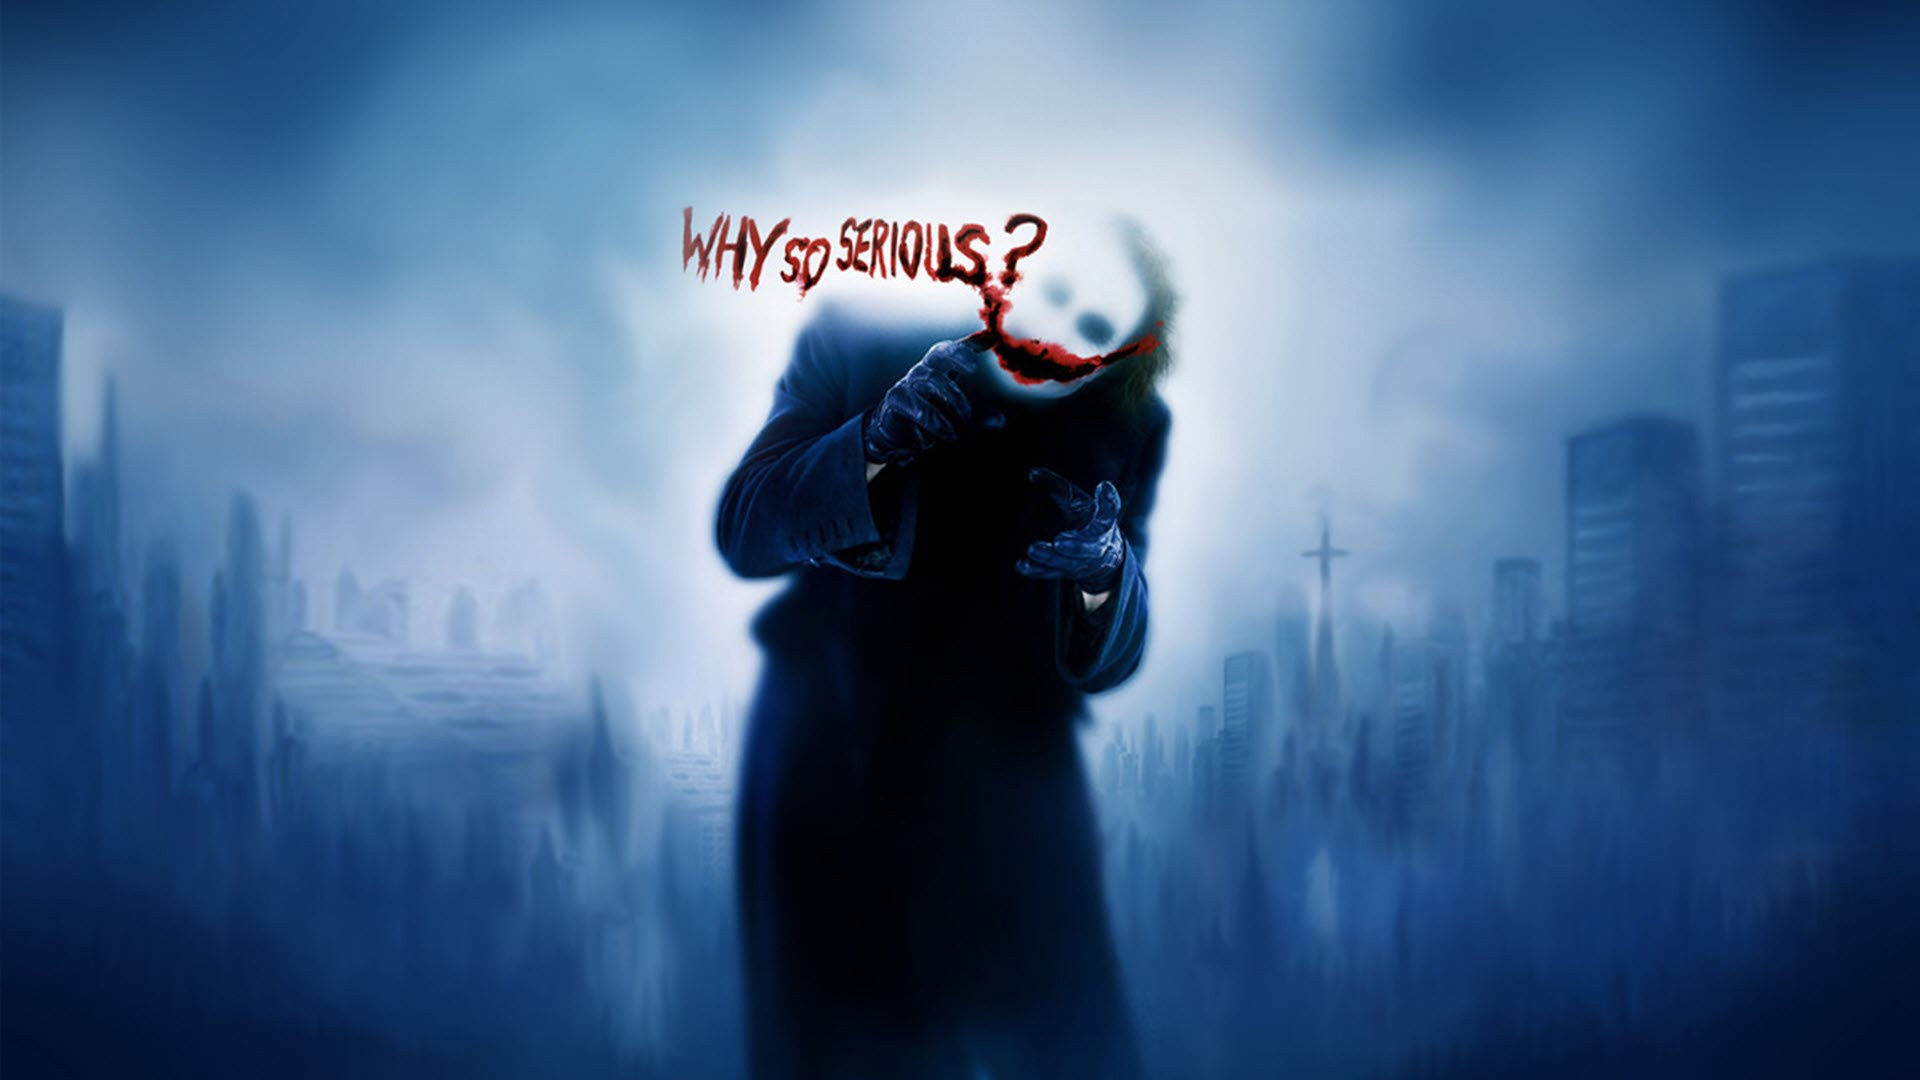 Joker Why So Serious Wallpapers In Jpg Format For Free Download